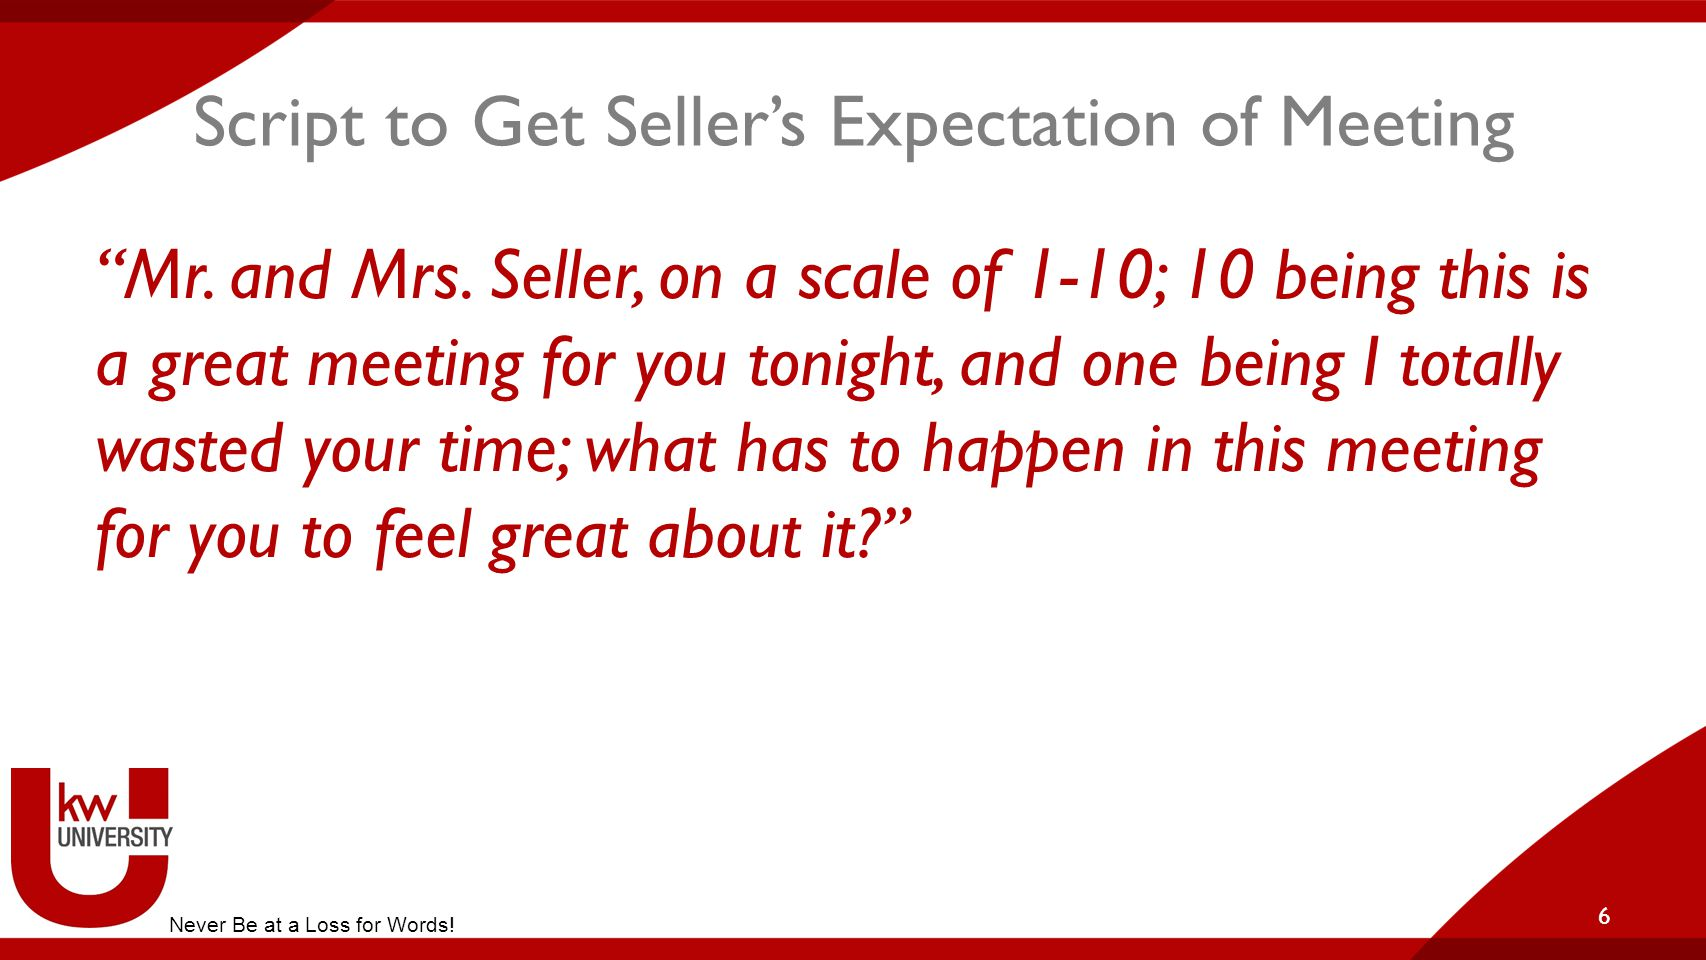 Script to Get Seller's Expectation of Meeting